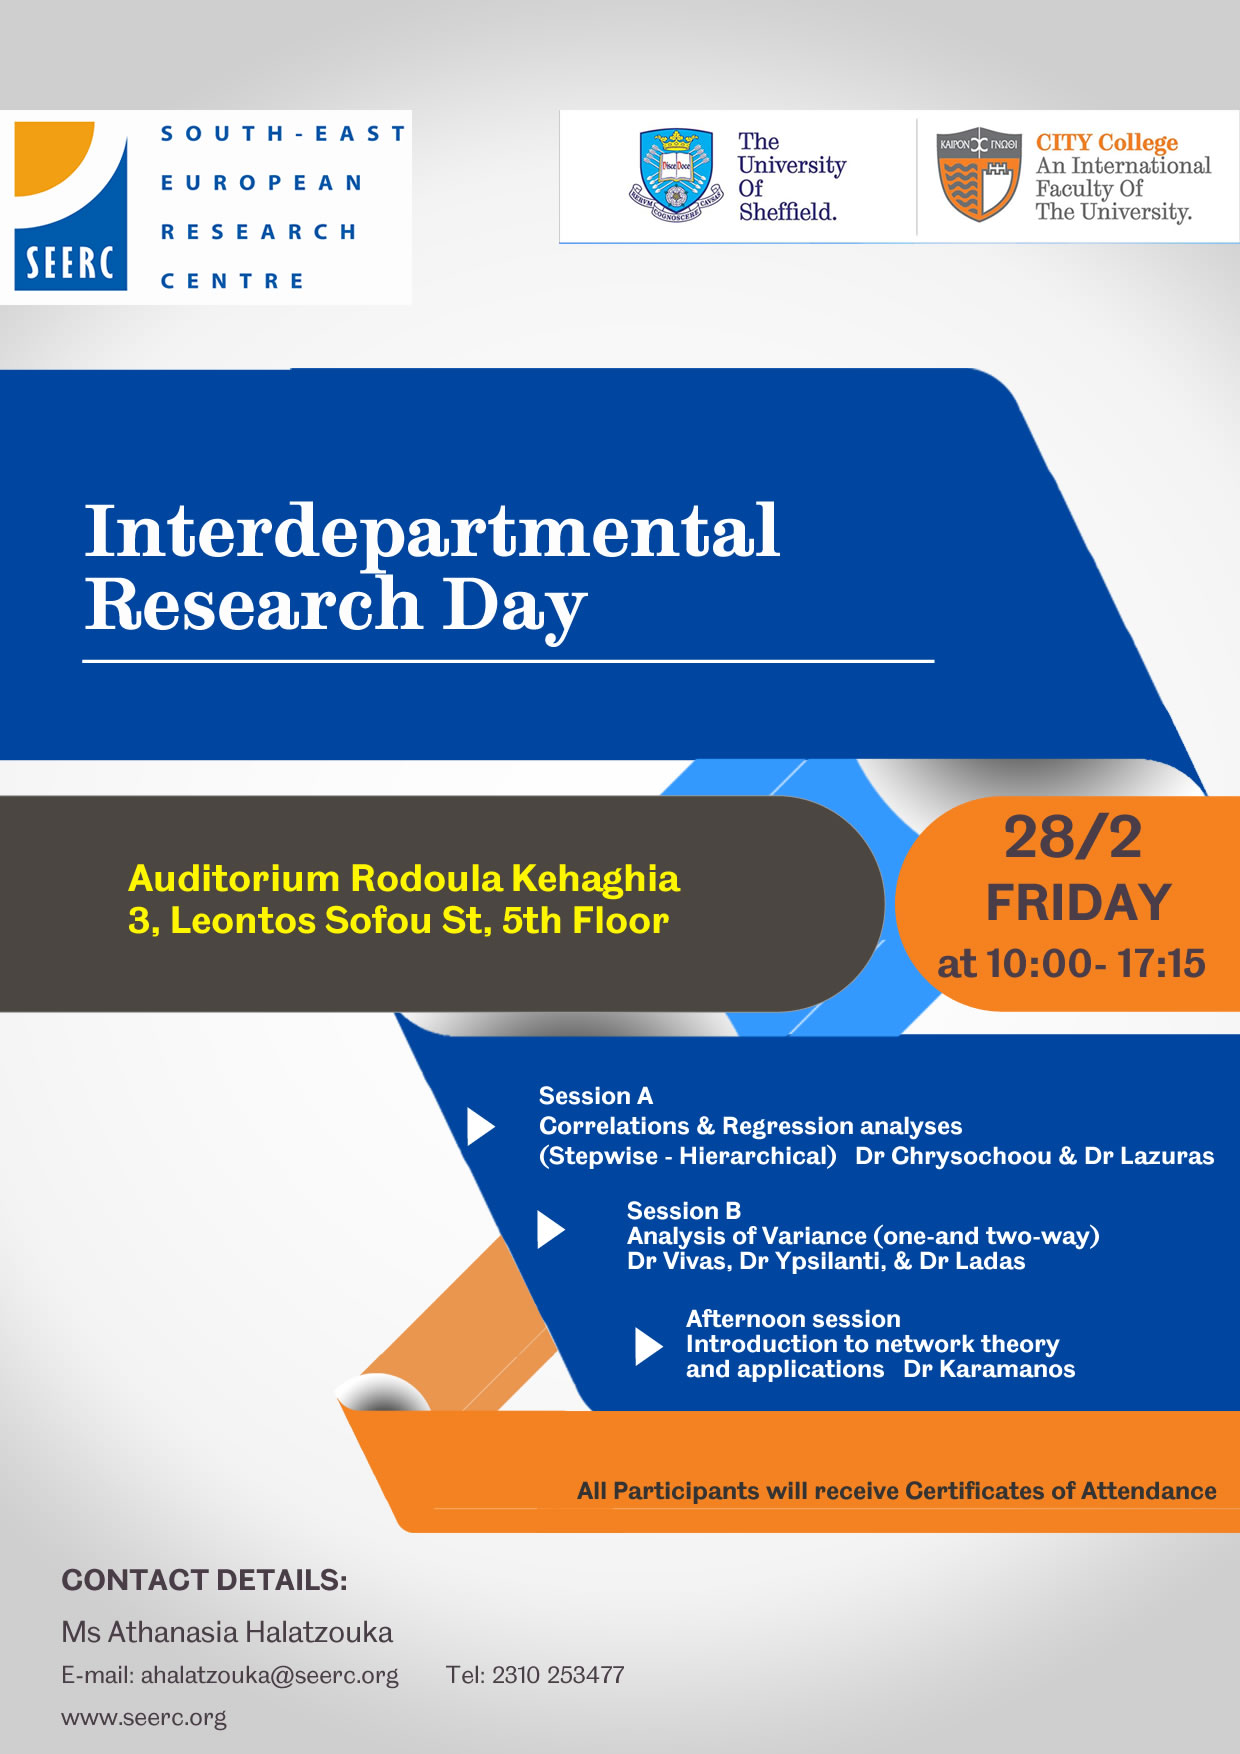 Interdepartmental Research Day, February 28th, 2014